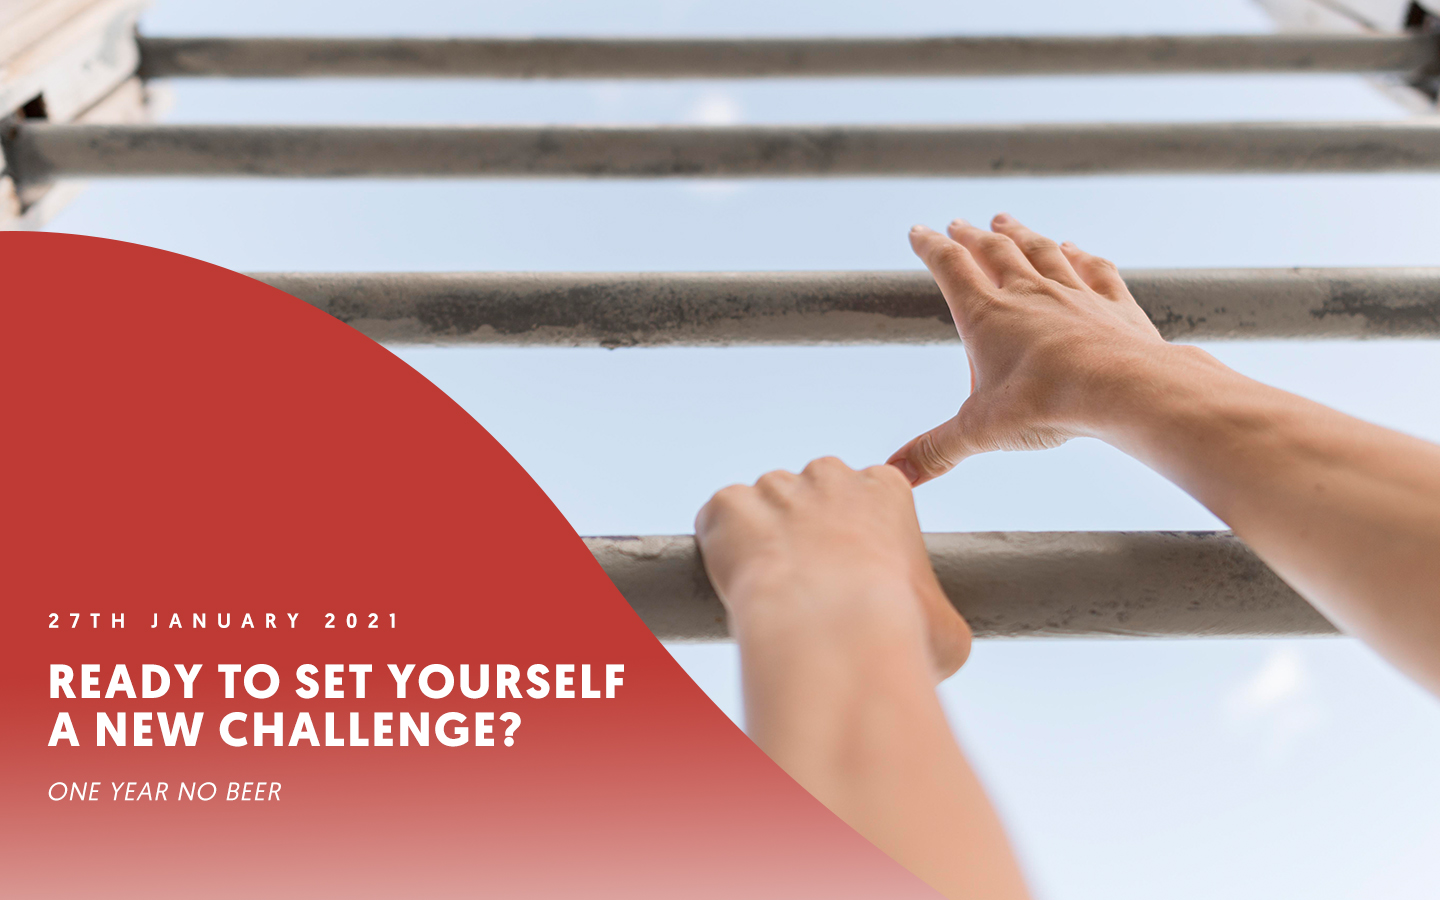 Ready to set yourself a new challenge?